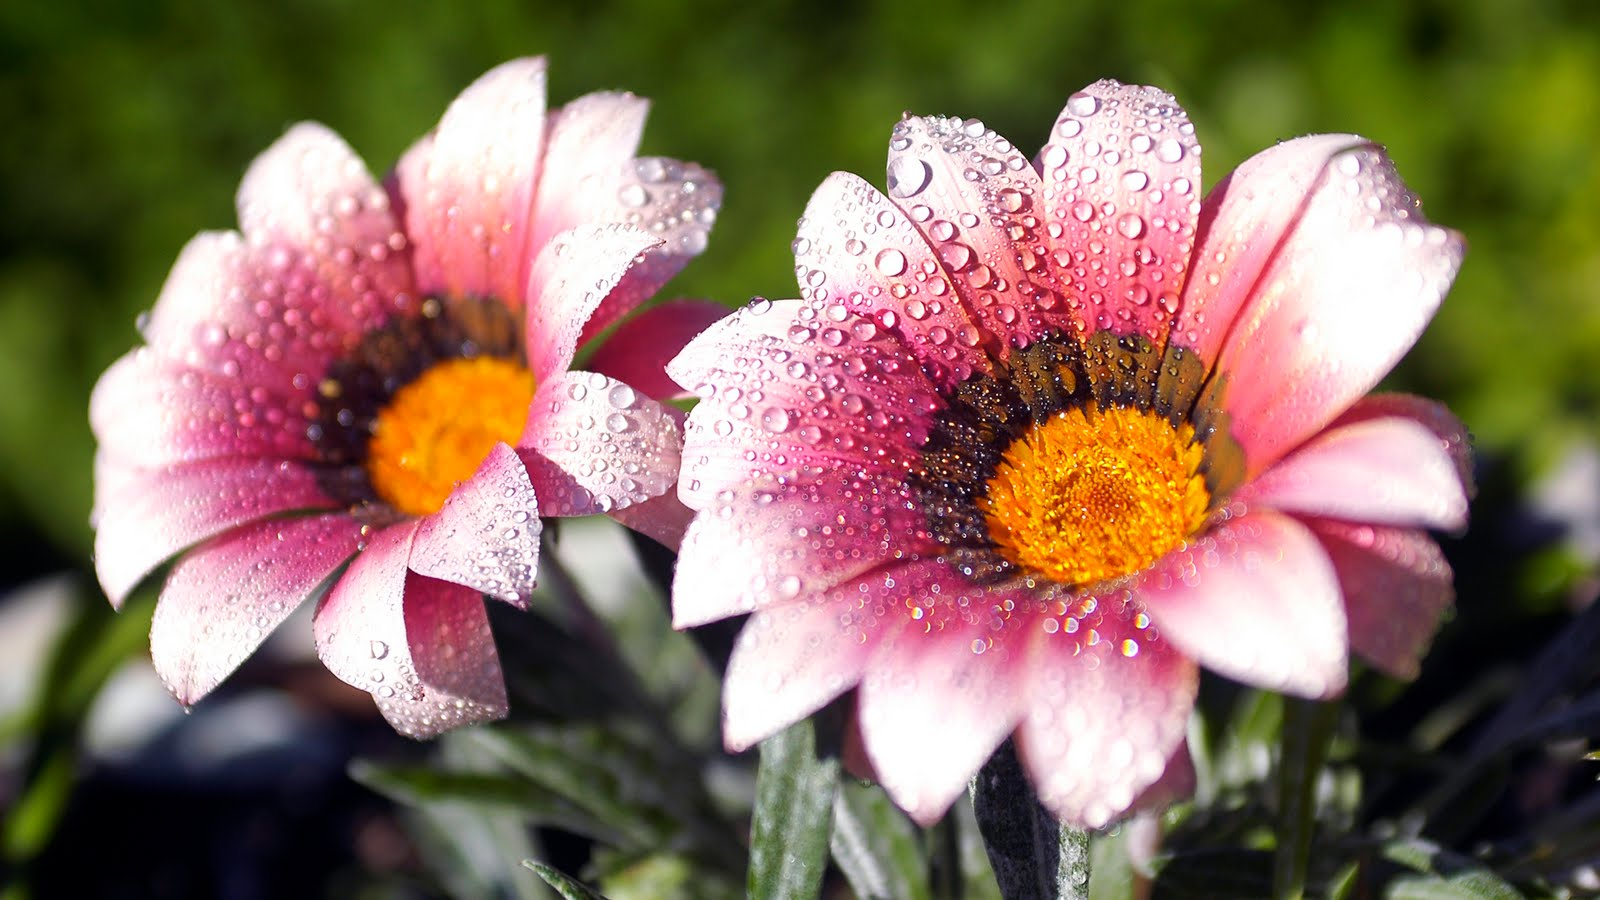 Download Flower Images Free.